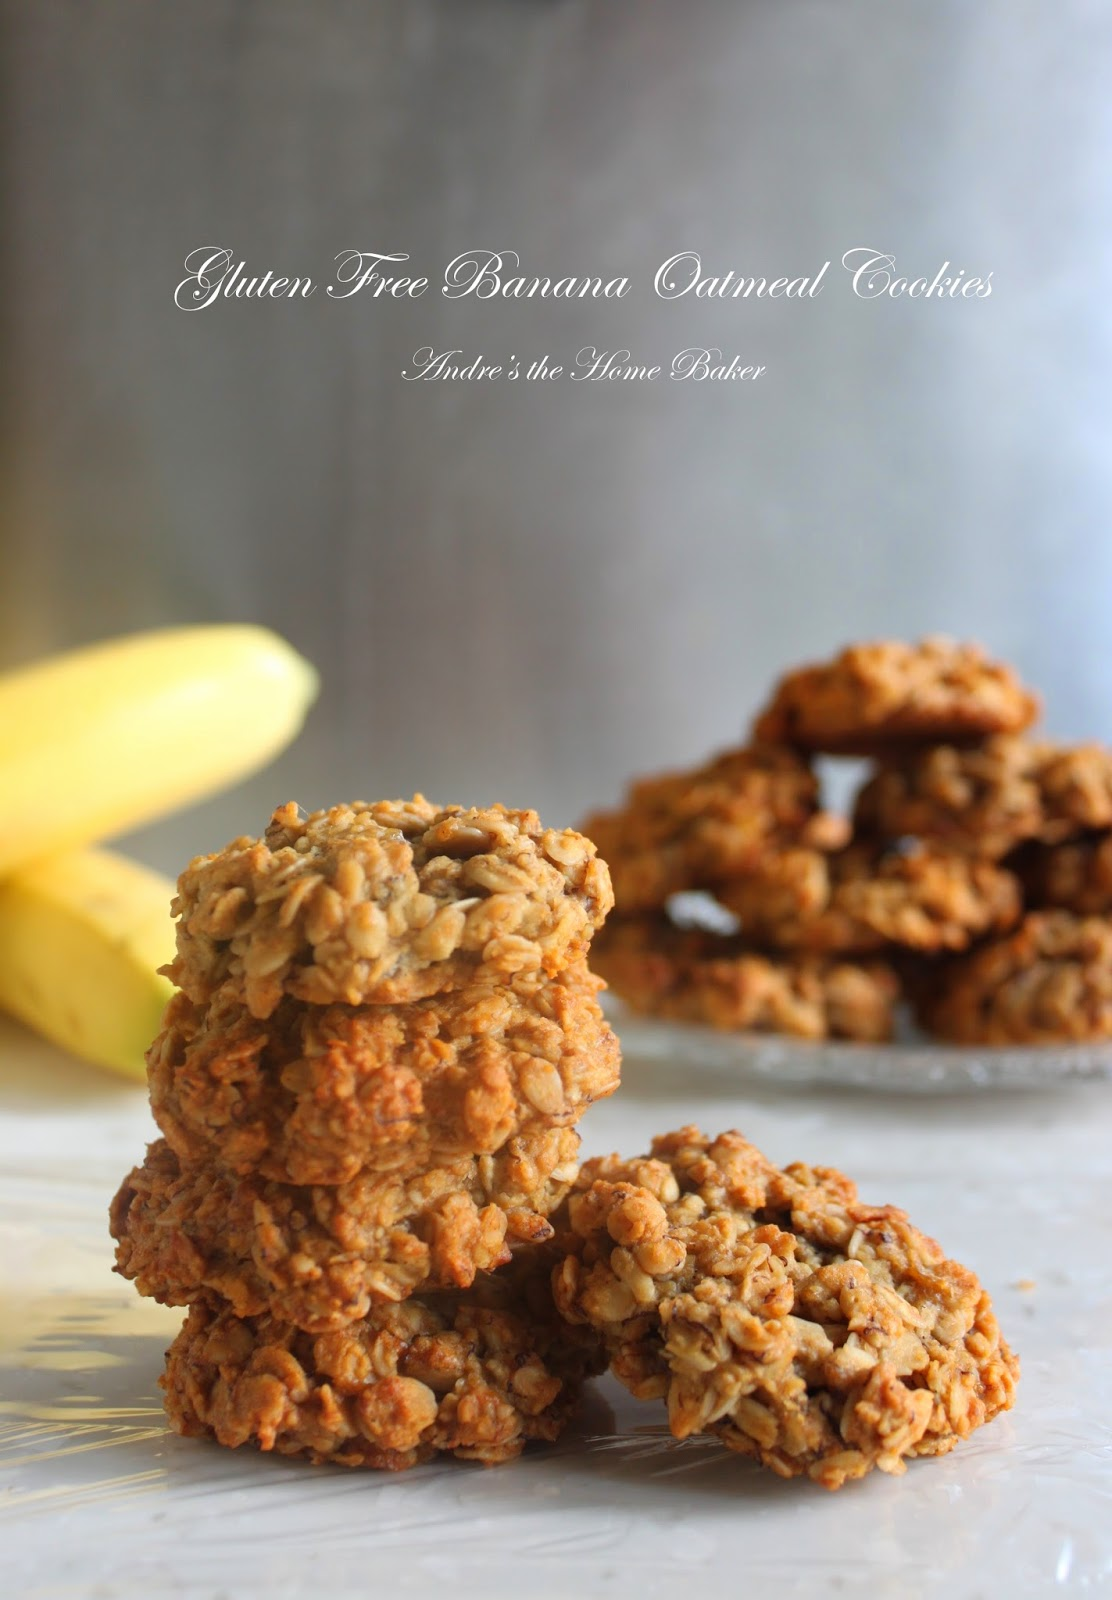 Andre's the Home Baker: ♥ Gluten Free Banana Oatmeal Cookies ♥